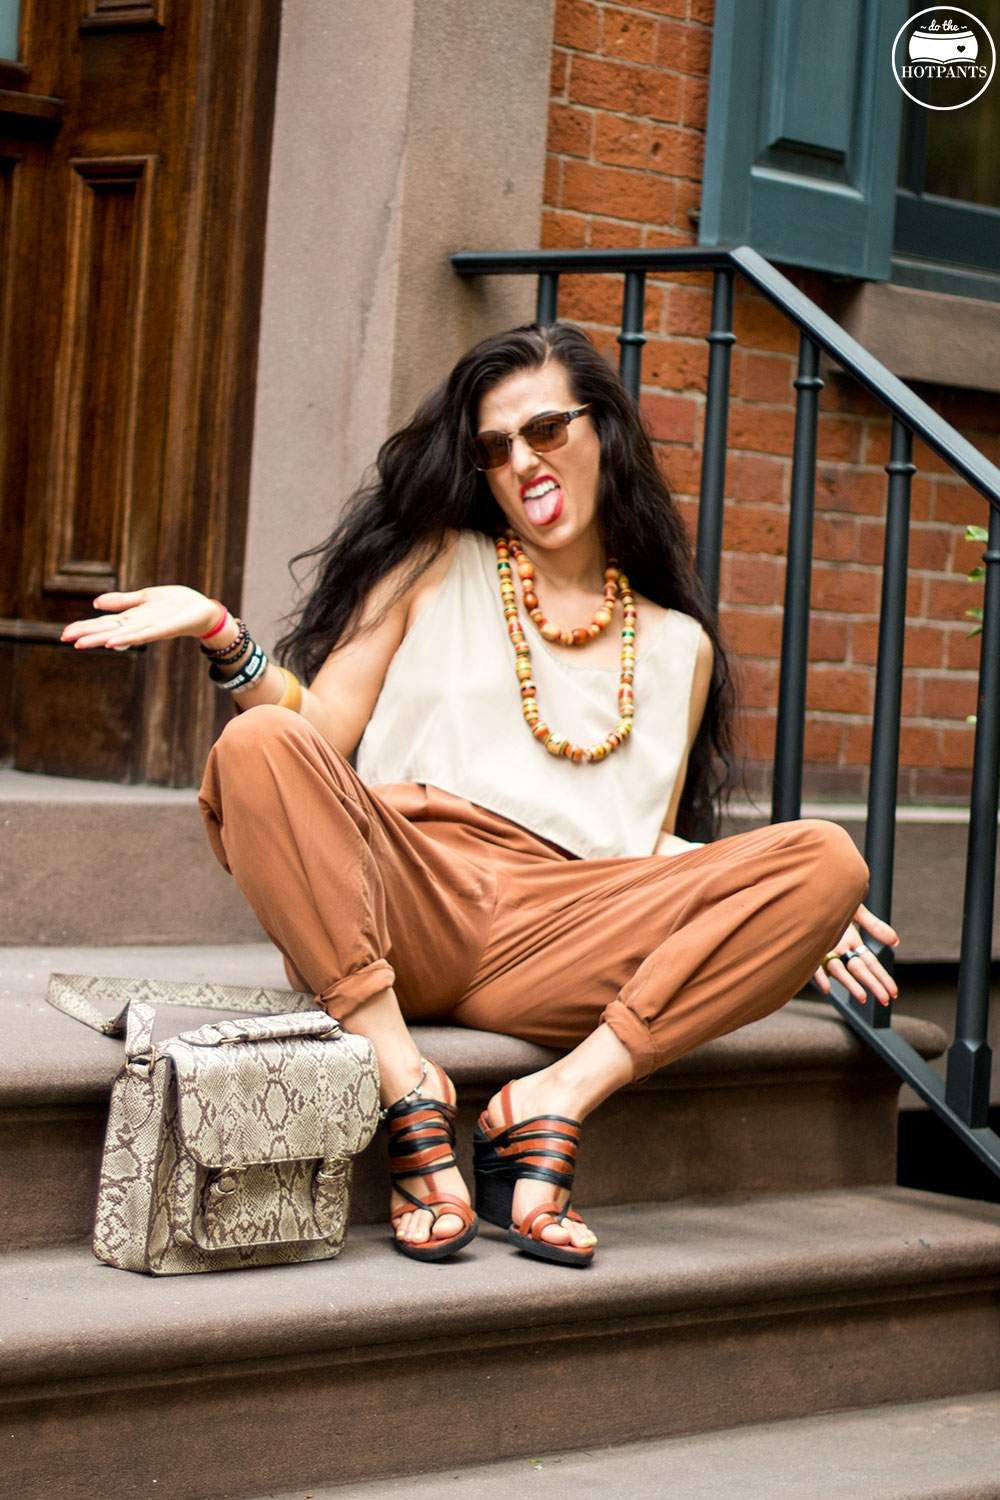 Do The Hotpants Dana Suchow Dharma Sunglasses Summer New York City Outfit Streetstyle Neutral Nude Fashion IMG_9881